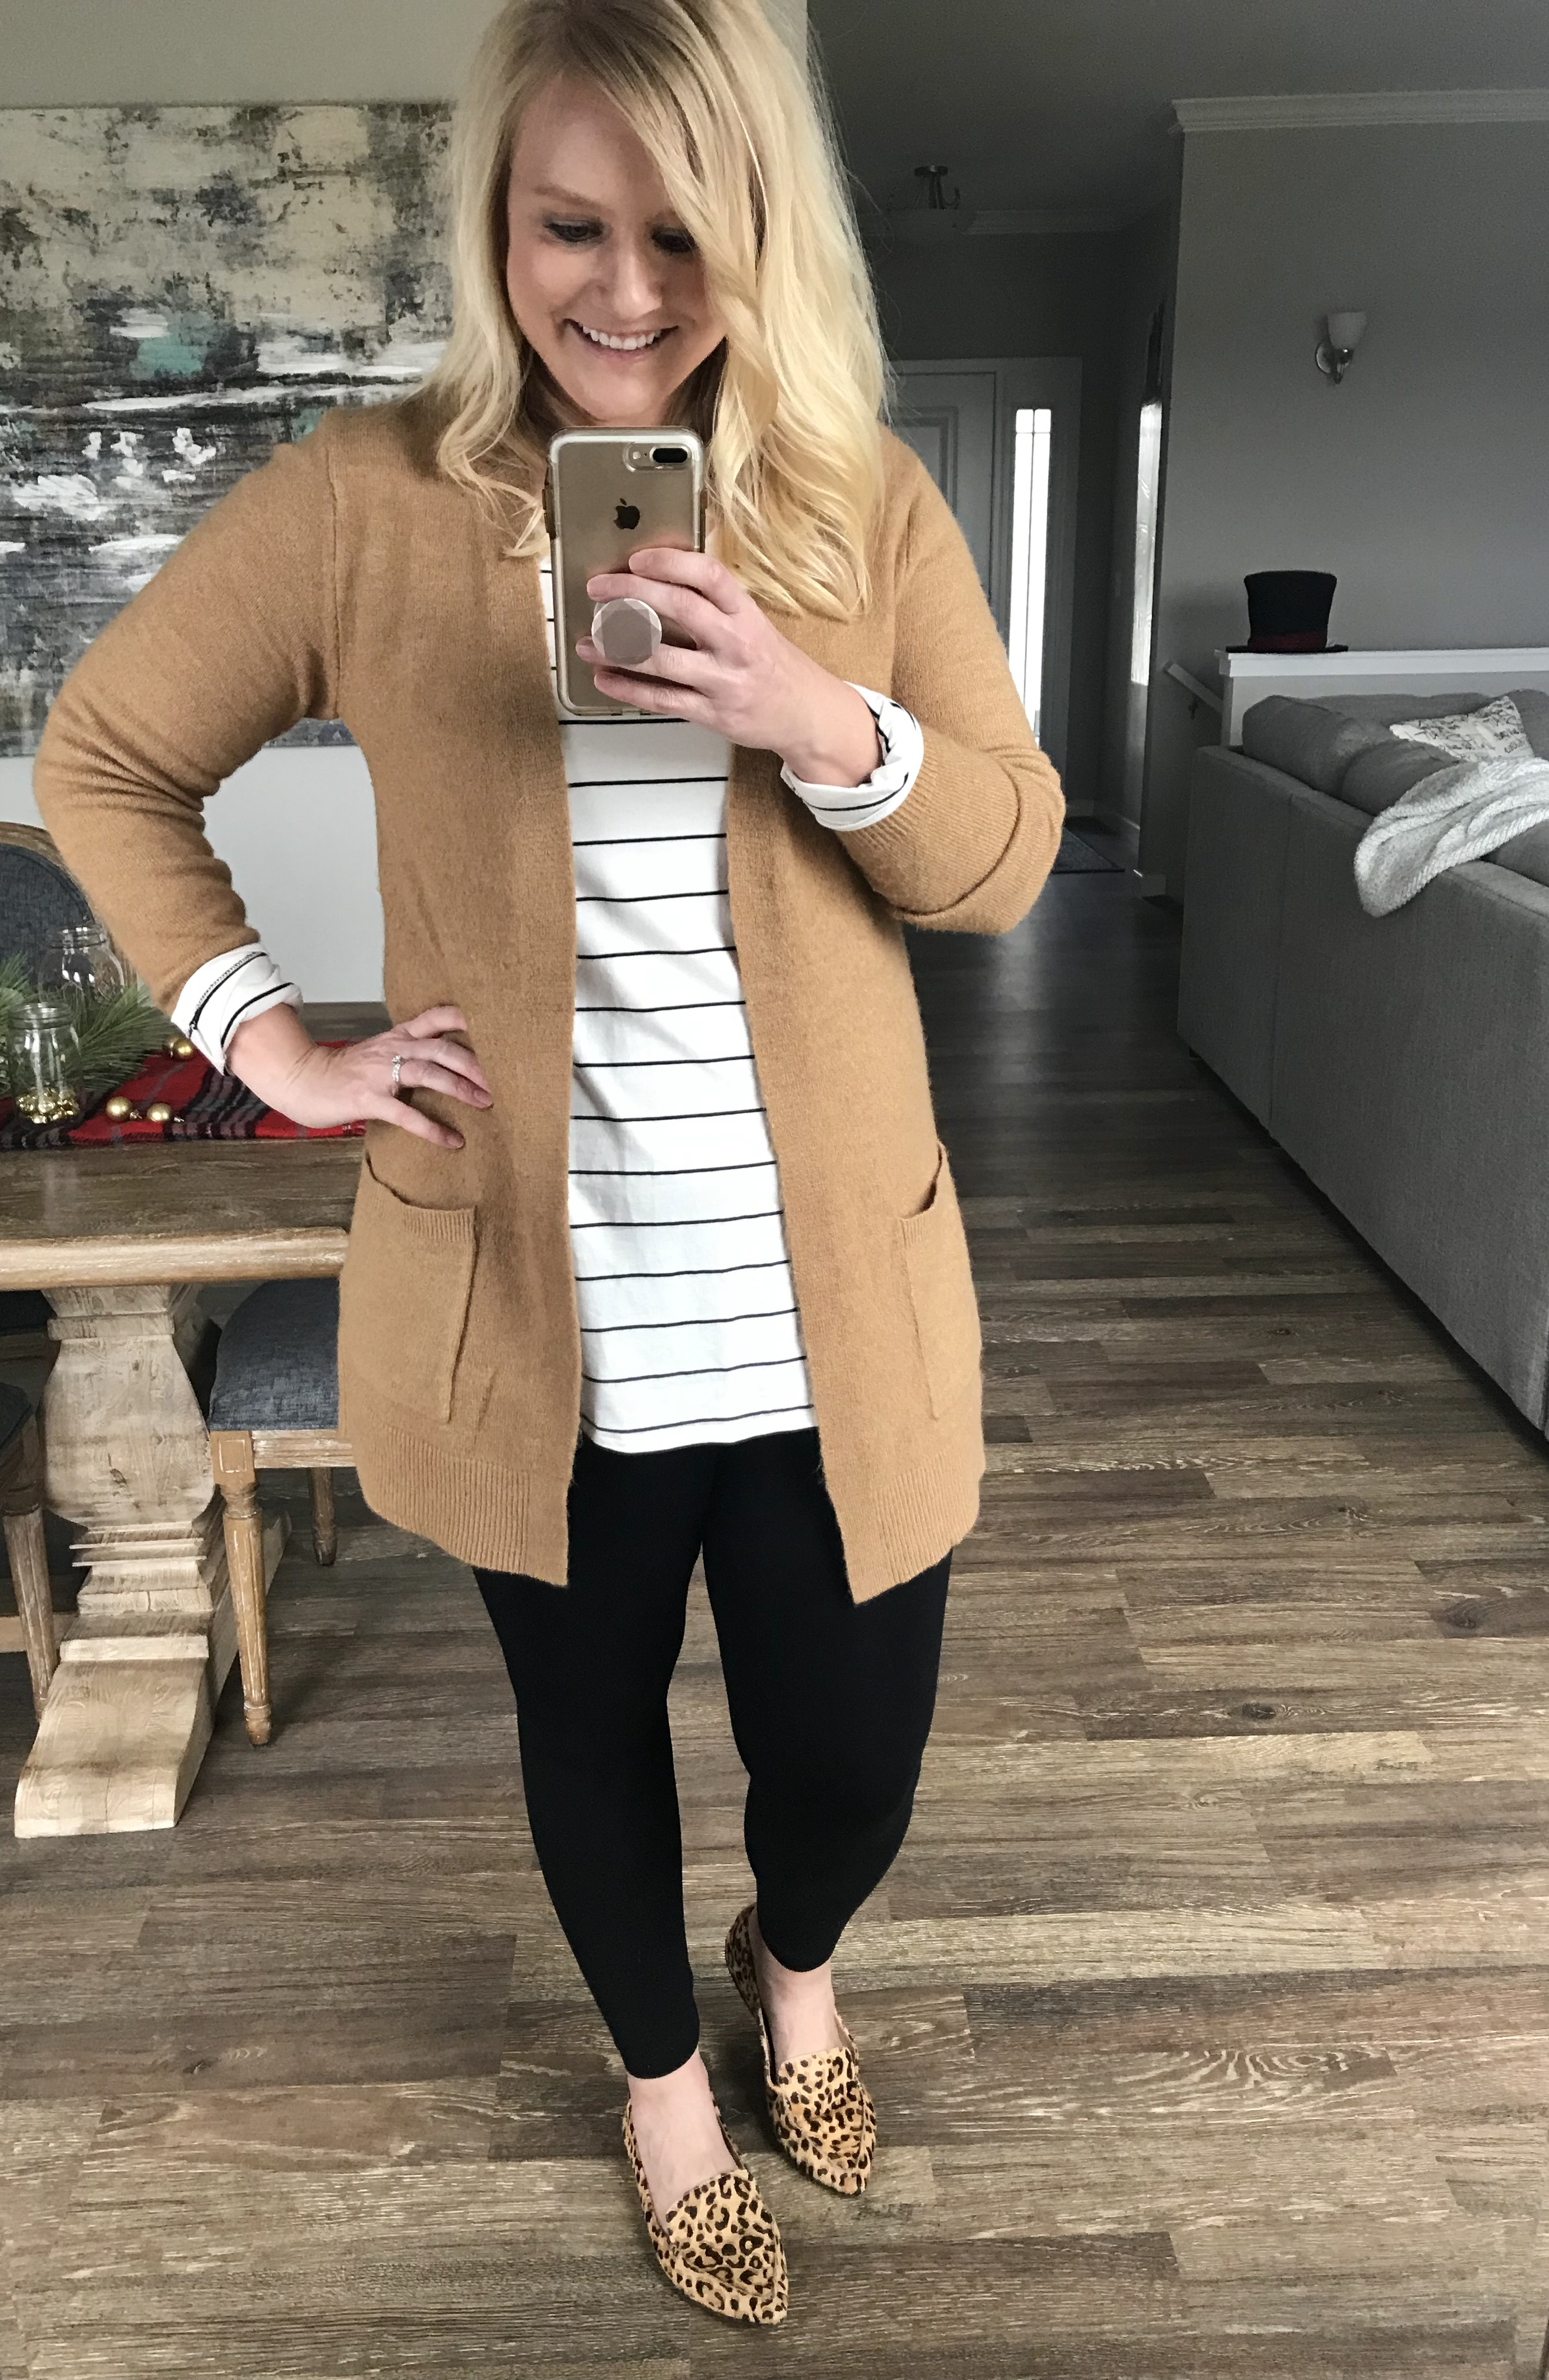 5 Comfortable Yet Stylish Outfits to Wear on Thanksgiving